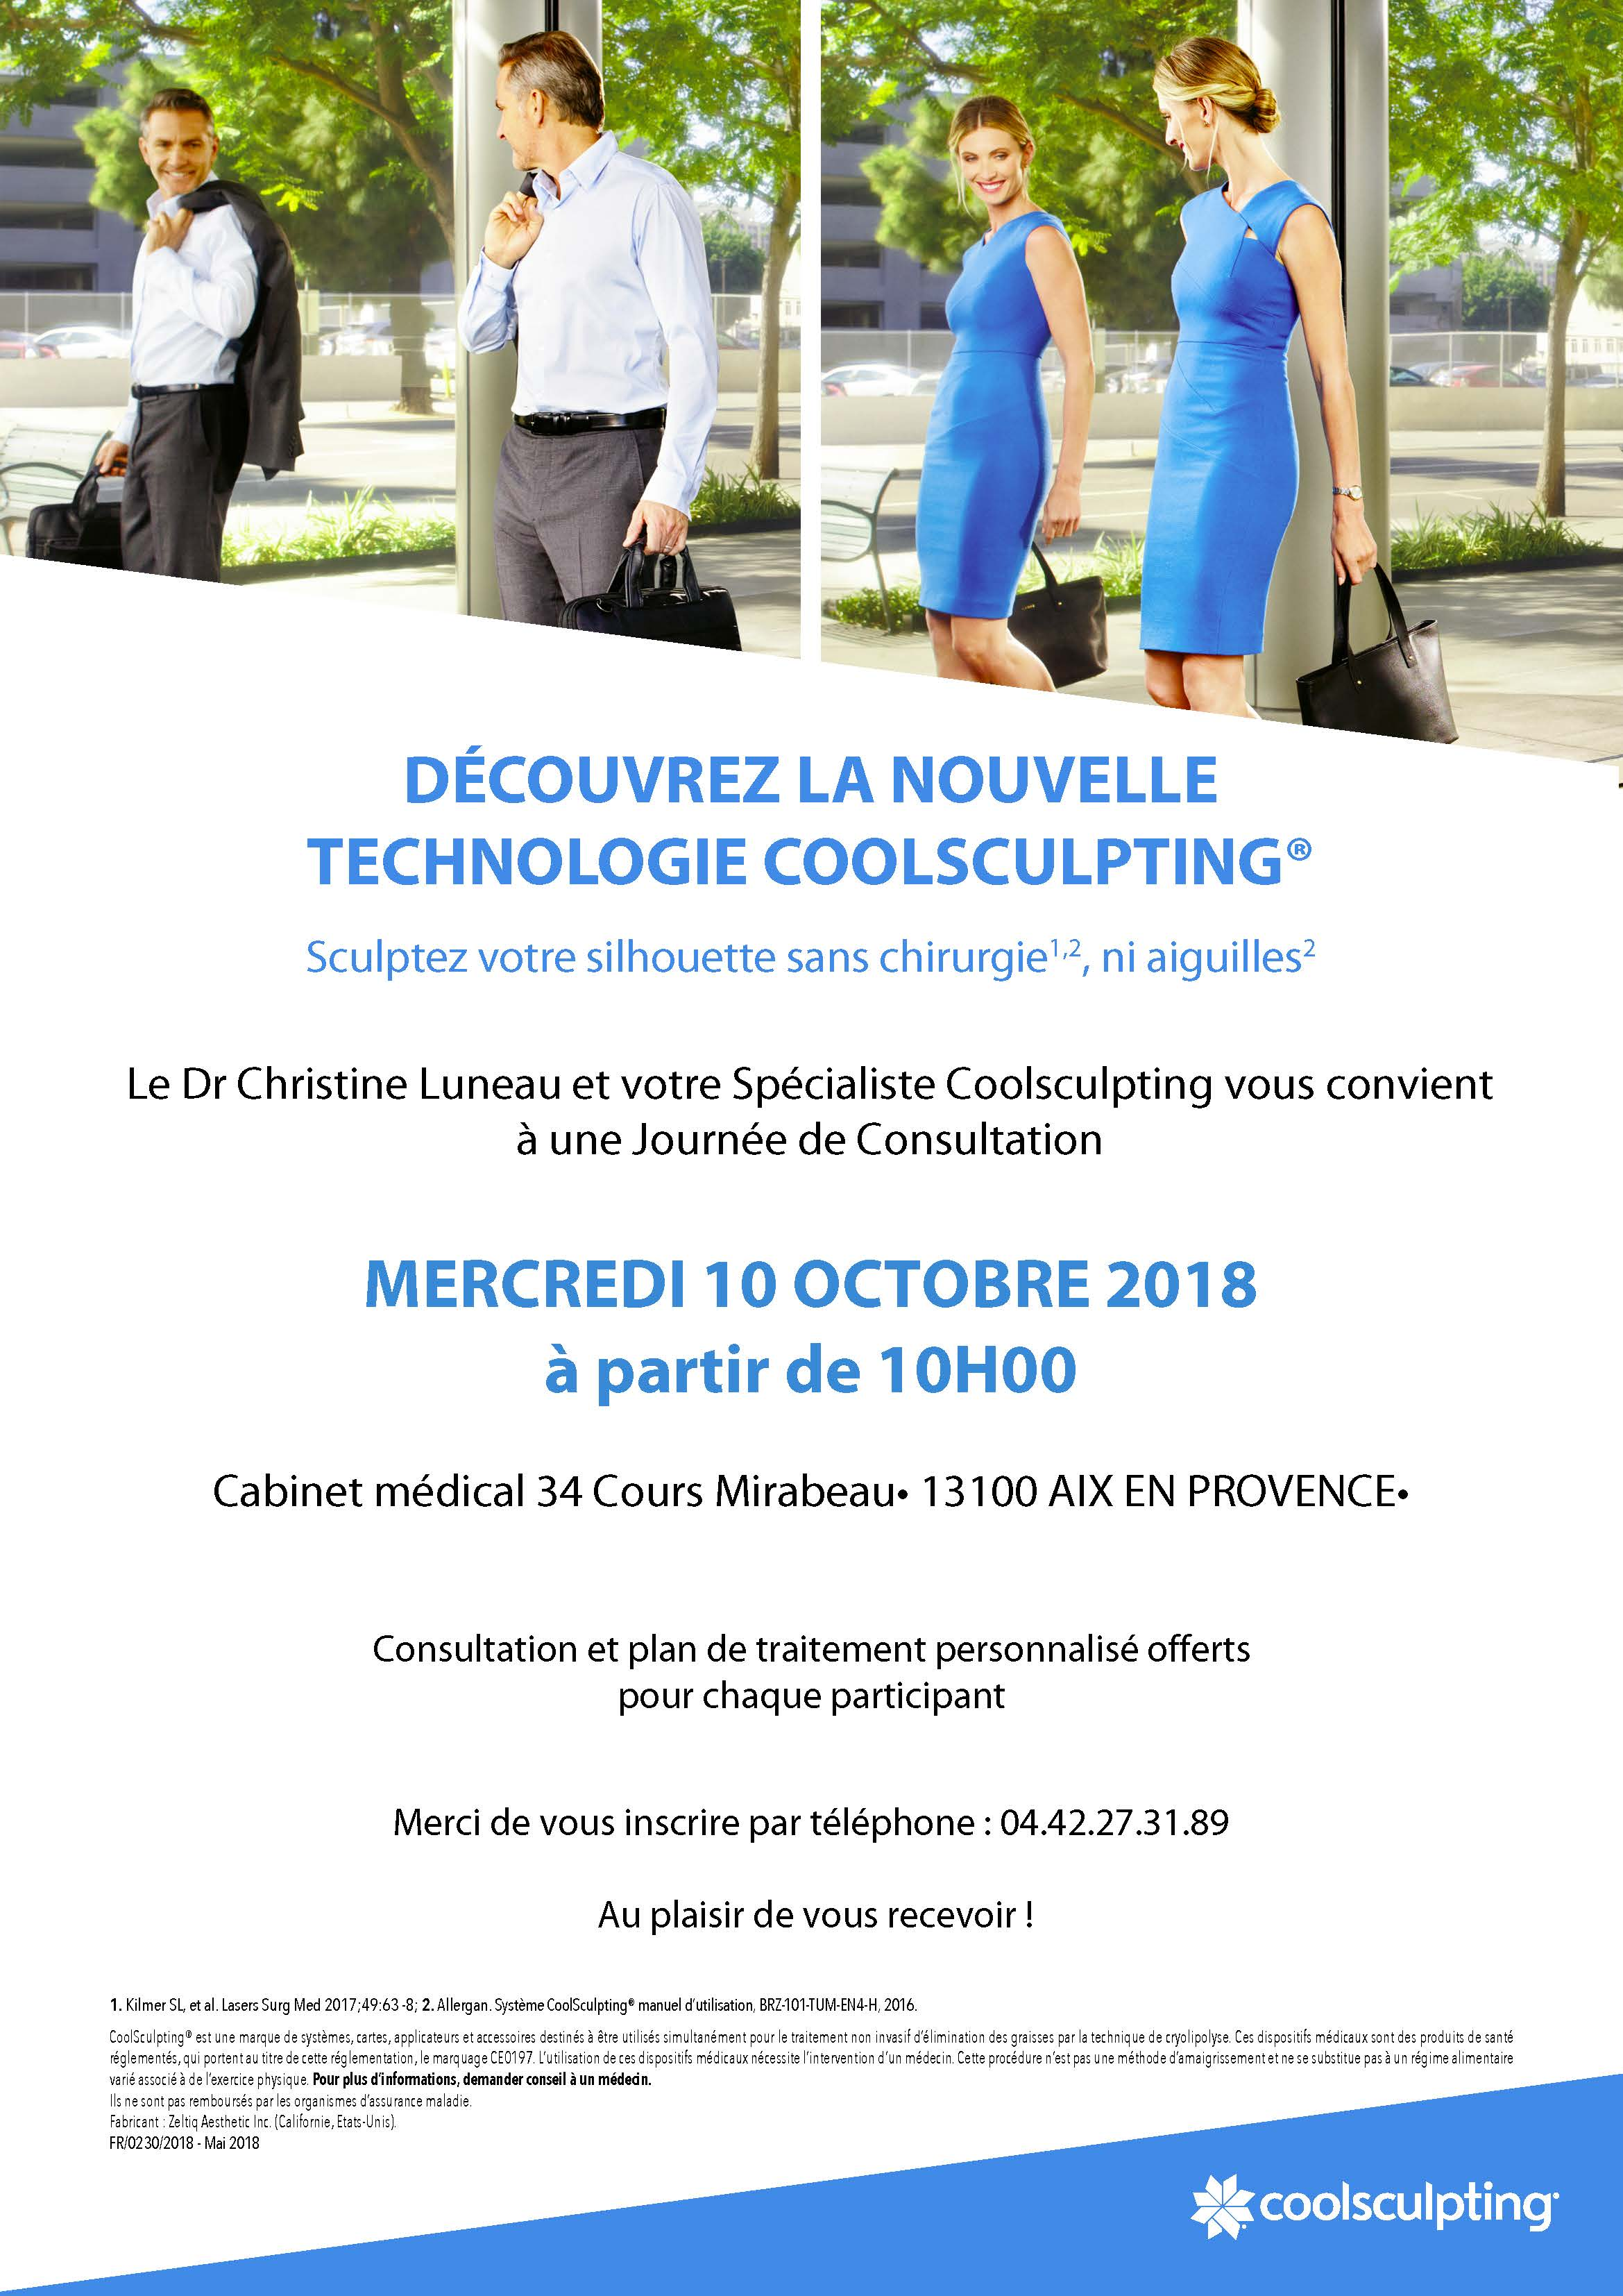 Journee de consultation Coolsculpting - le 10 octobre 2018 à partir de 10h00